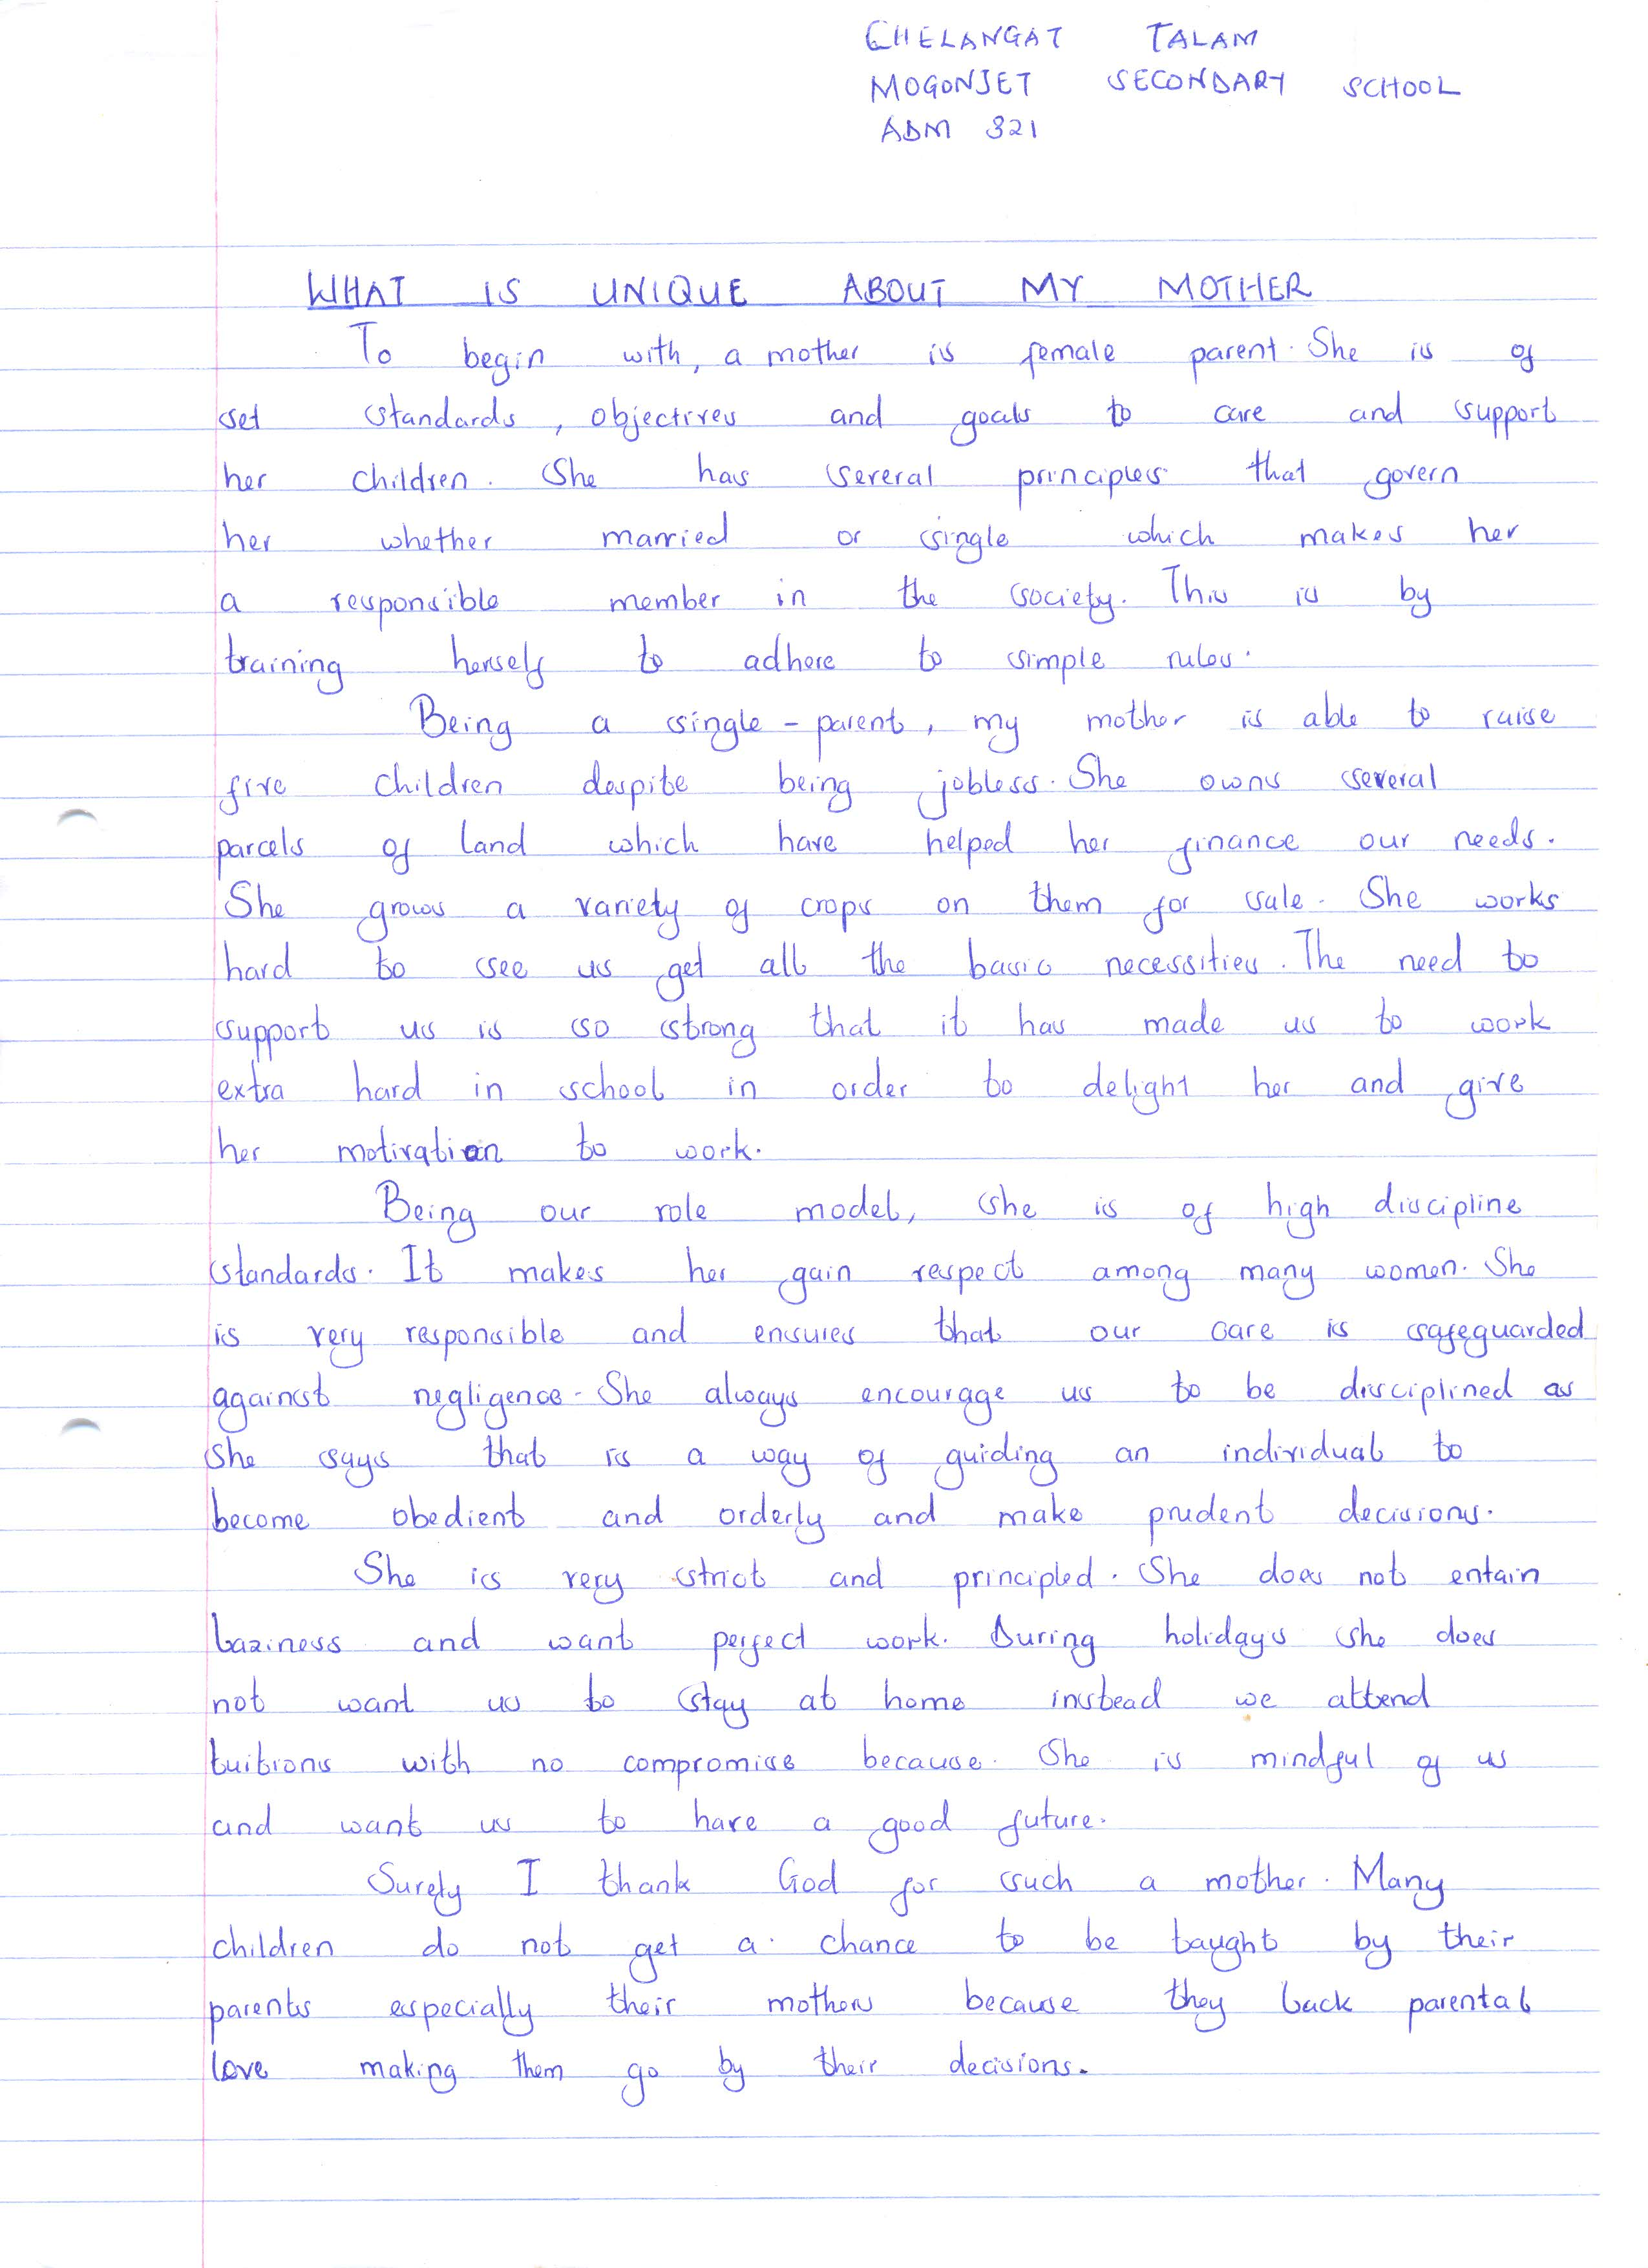 016 Essay Example Inspirational Breathtaking Essays In Hindi About Life And Struggles Fathers Full